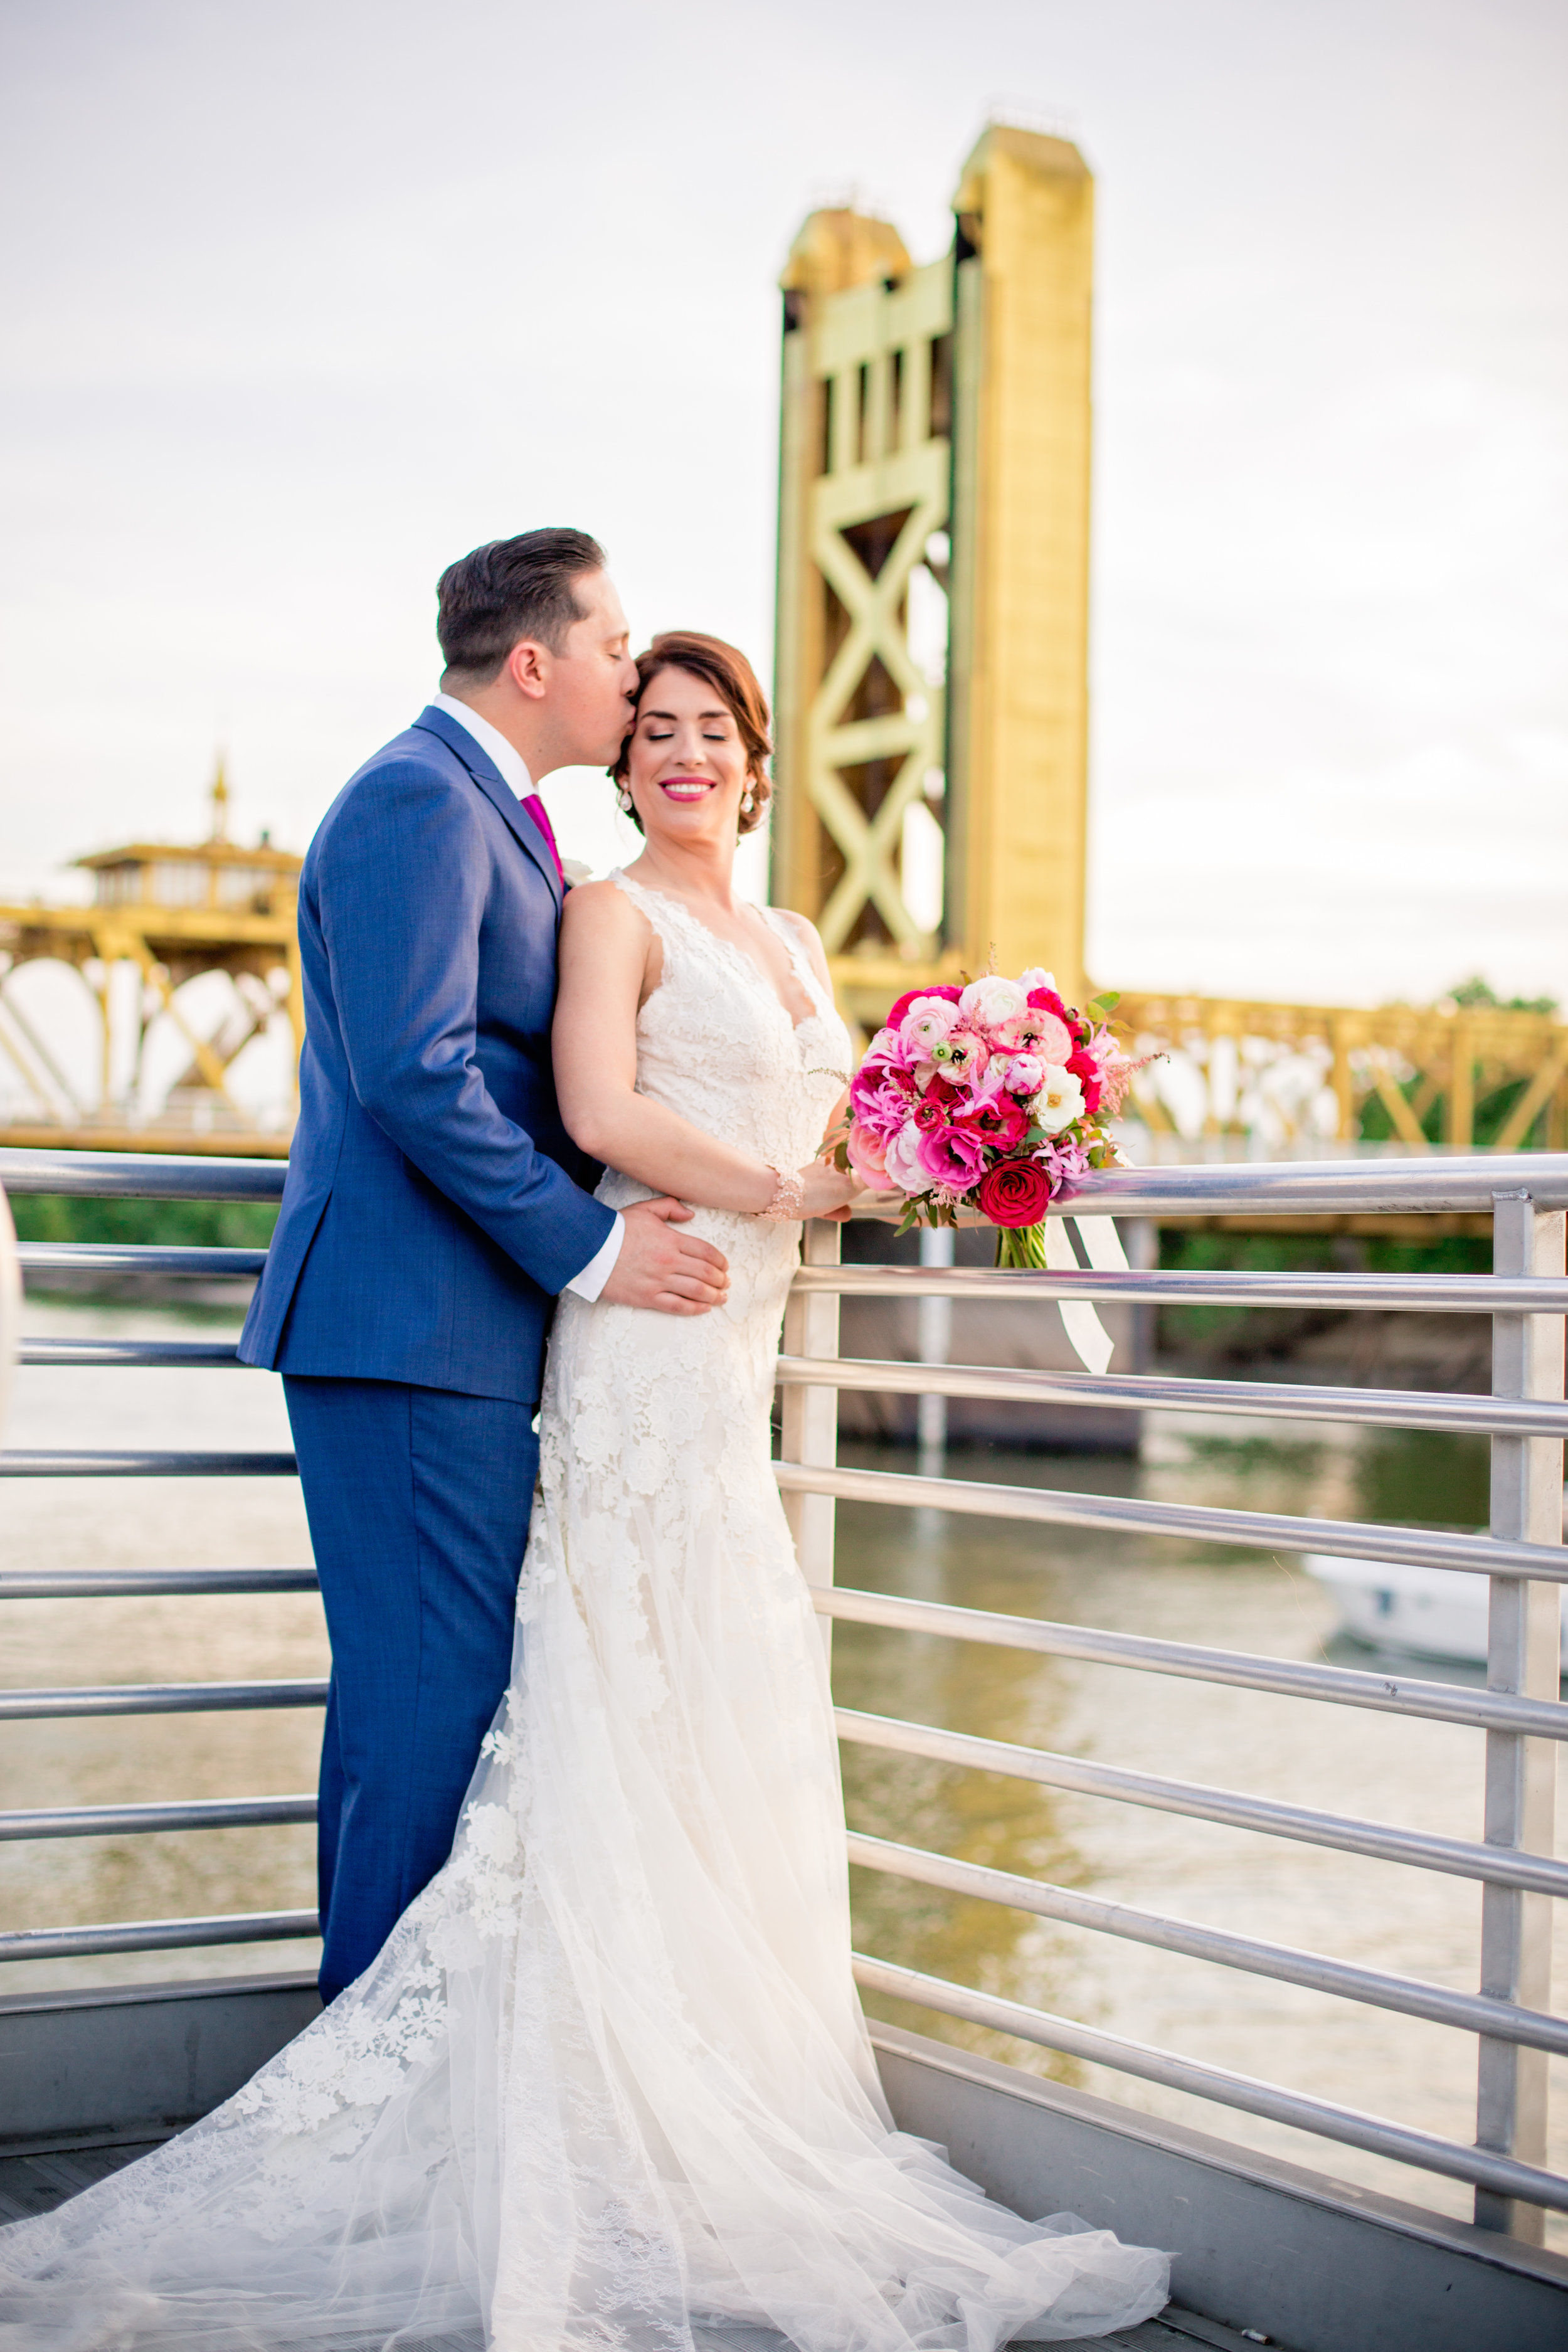 Tarrah & Francisco - The Kimpton Sawyer Hotel - The Firehouse Old Sac - Sacramento Wedding Photographer - Ashley Teasley Photography (23 of 118).jpg